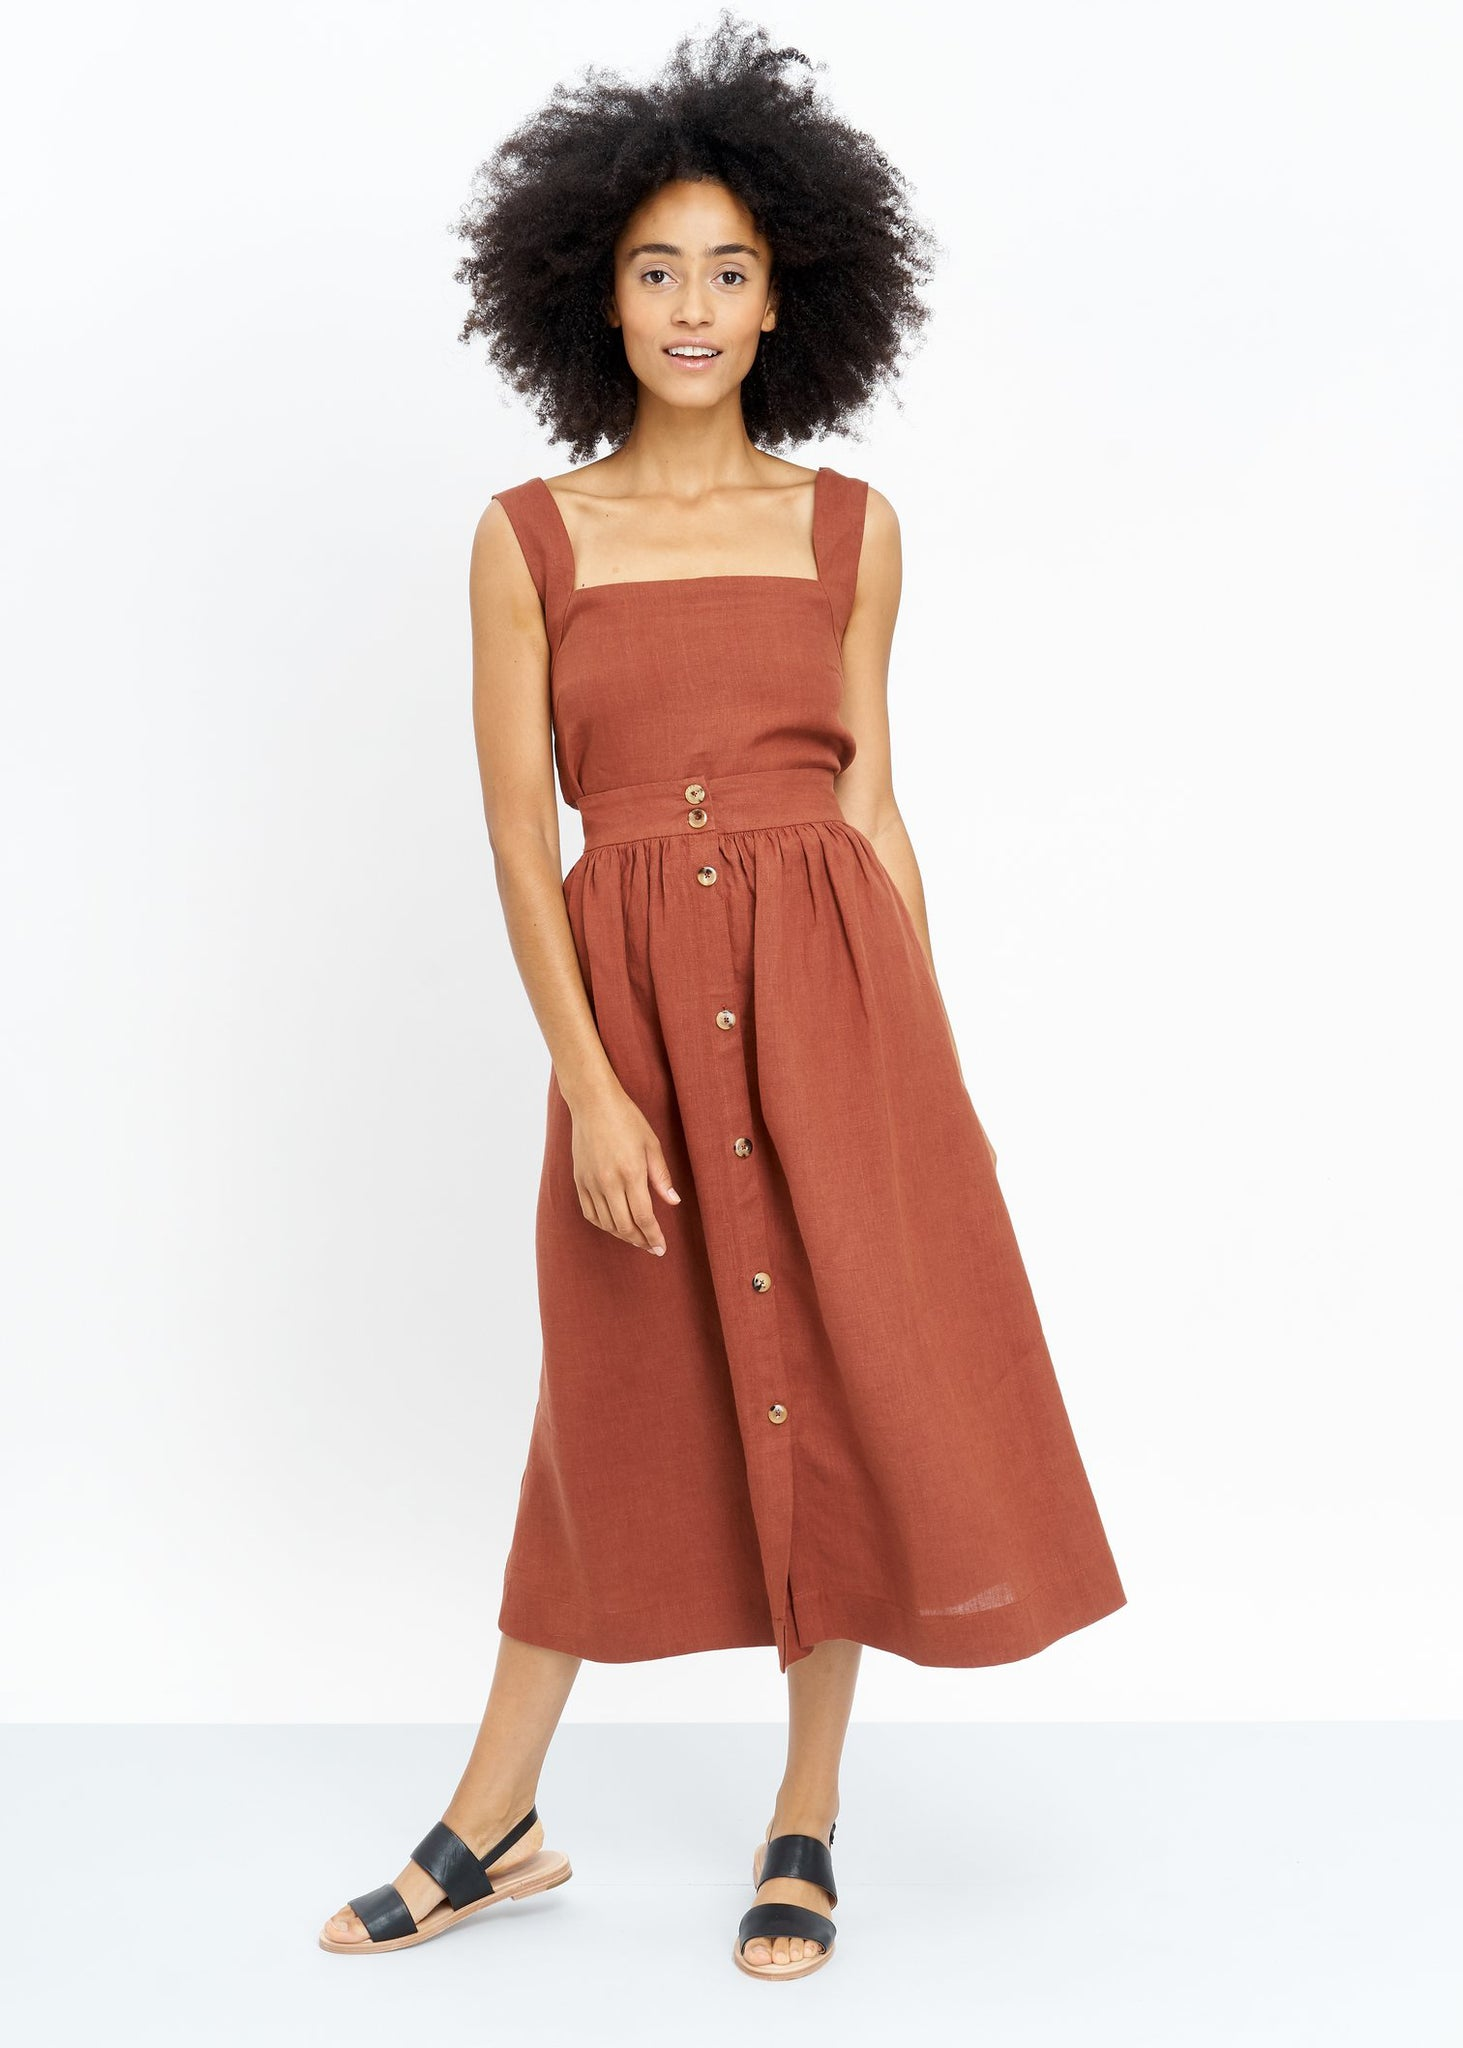 JUNGLE FOLK - Lourdes Linen Skirt - Rust